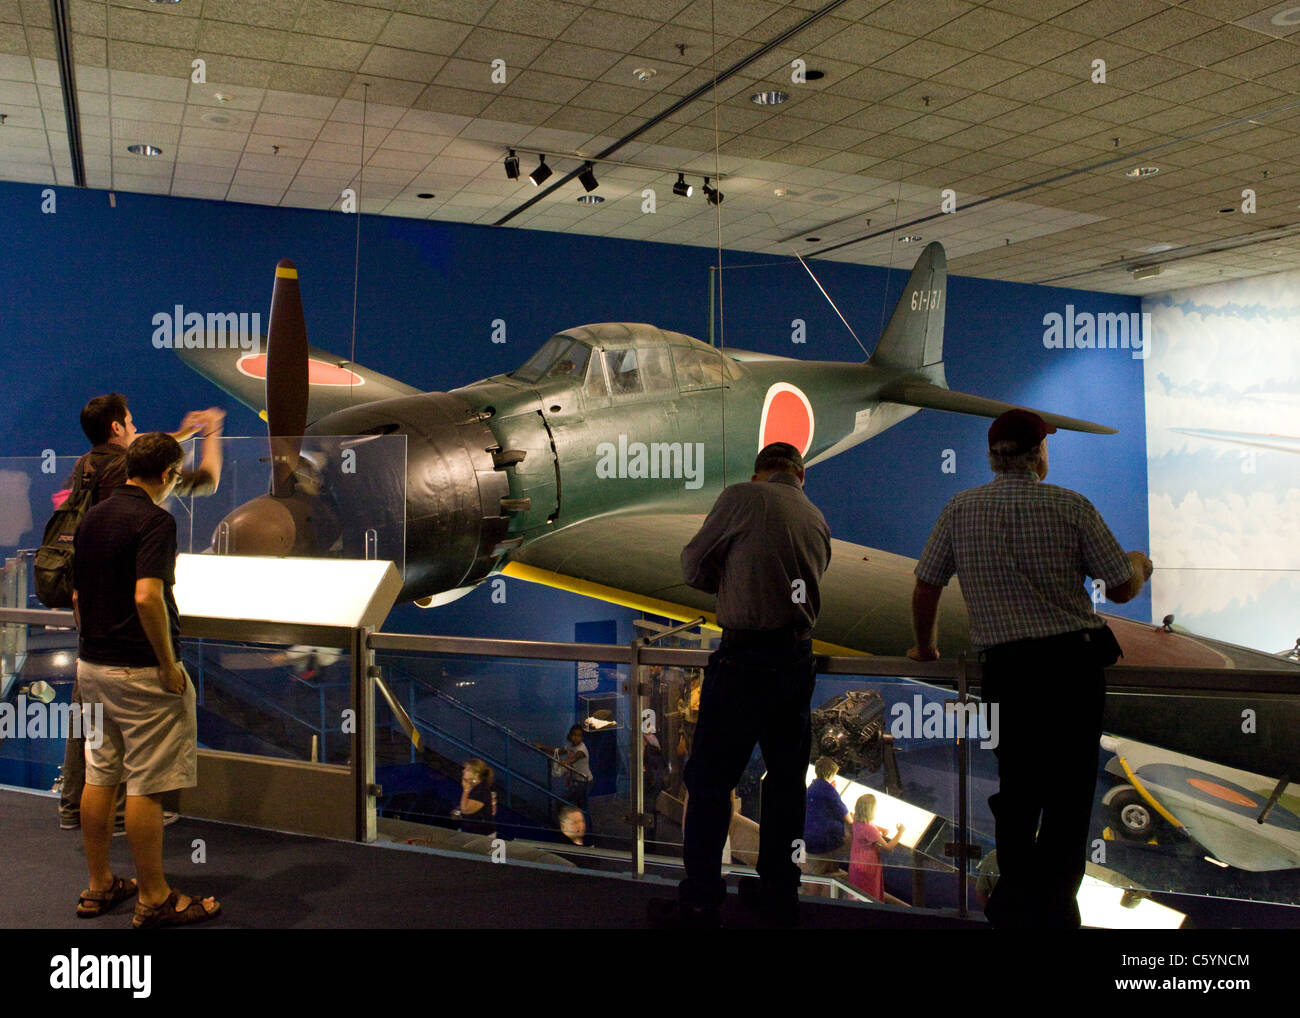 wwii japanese mitsubishi a6m zero fighter aircraft stock photo